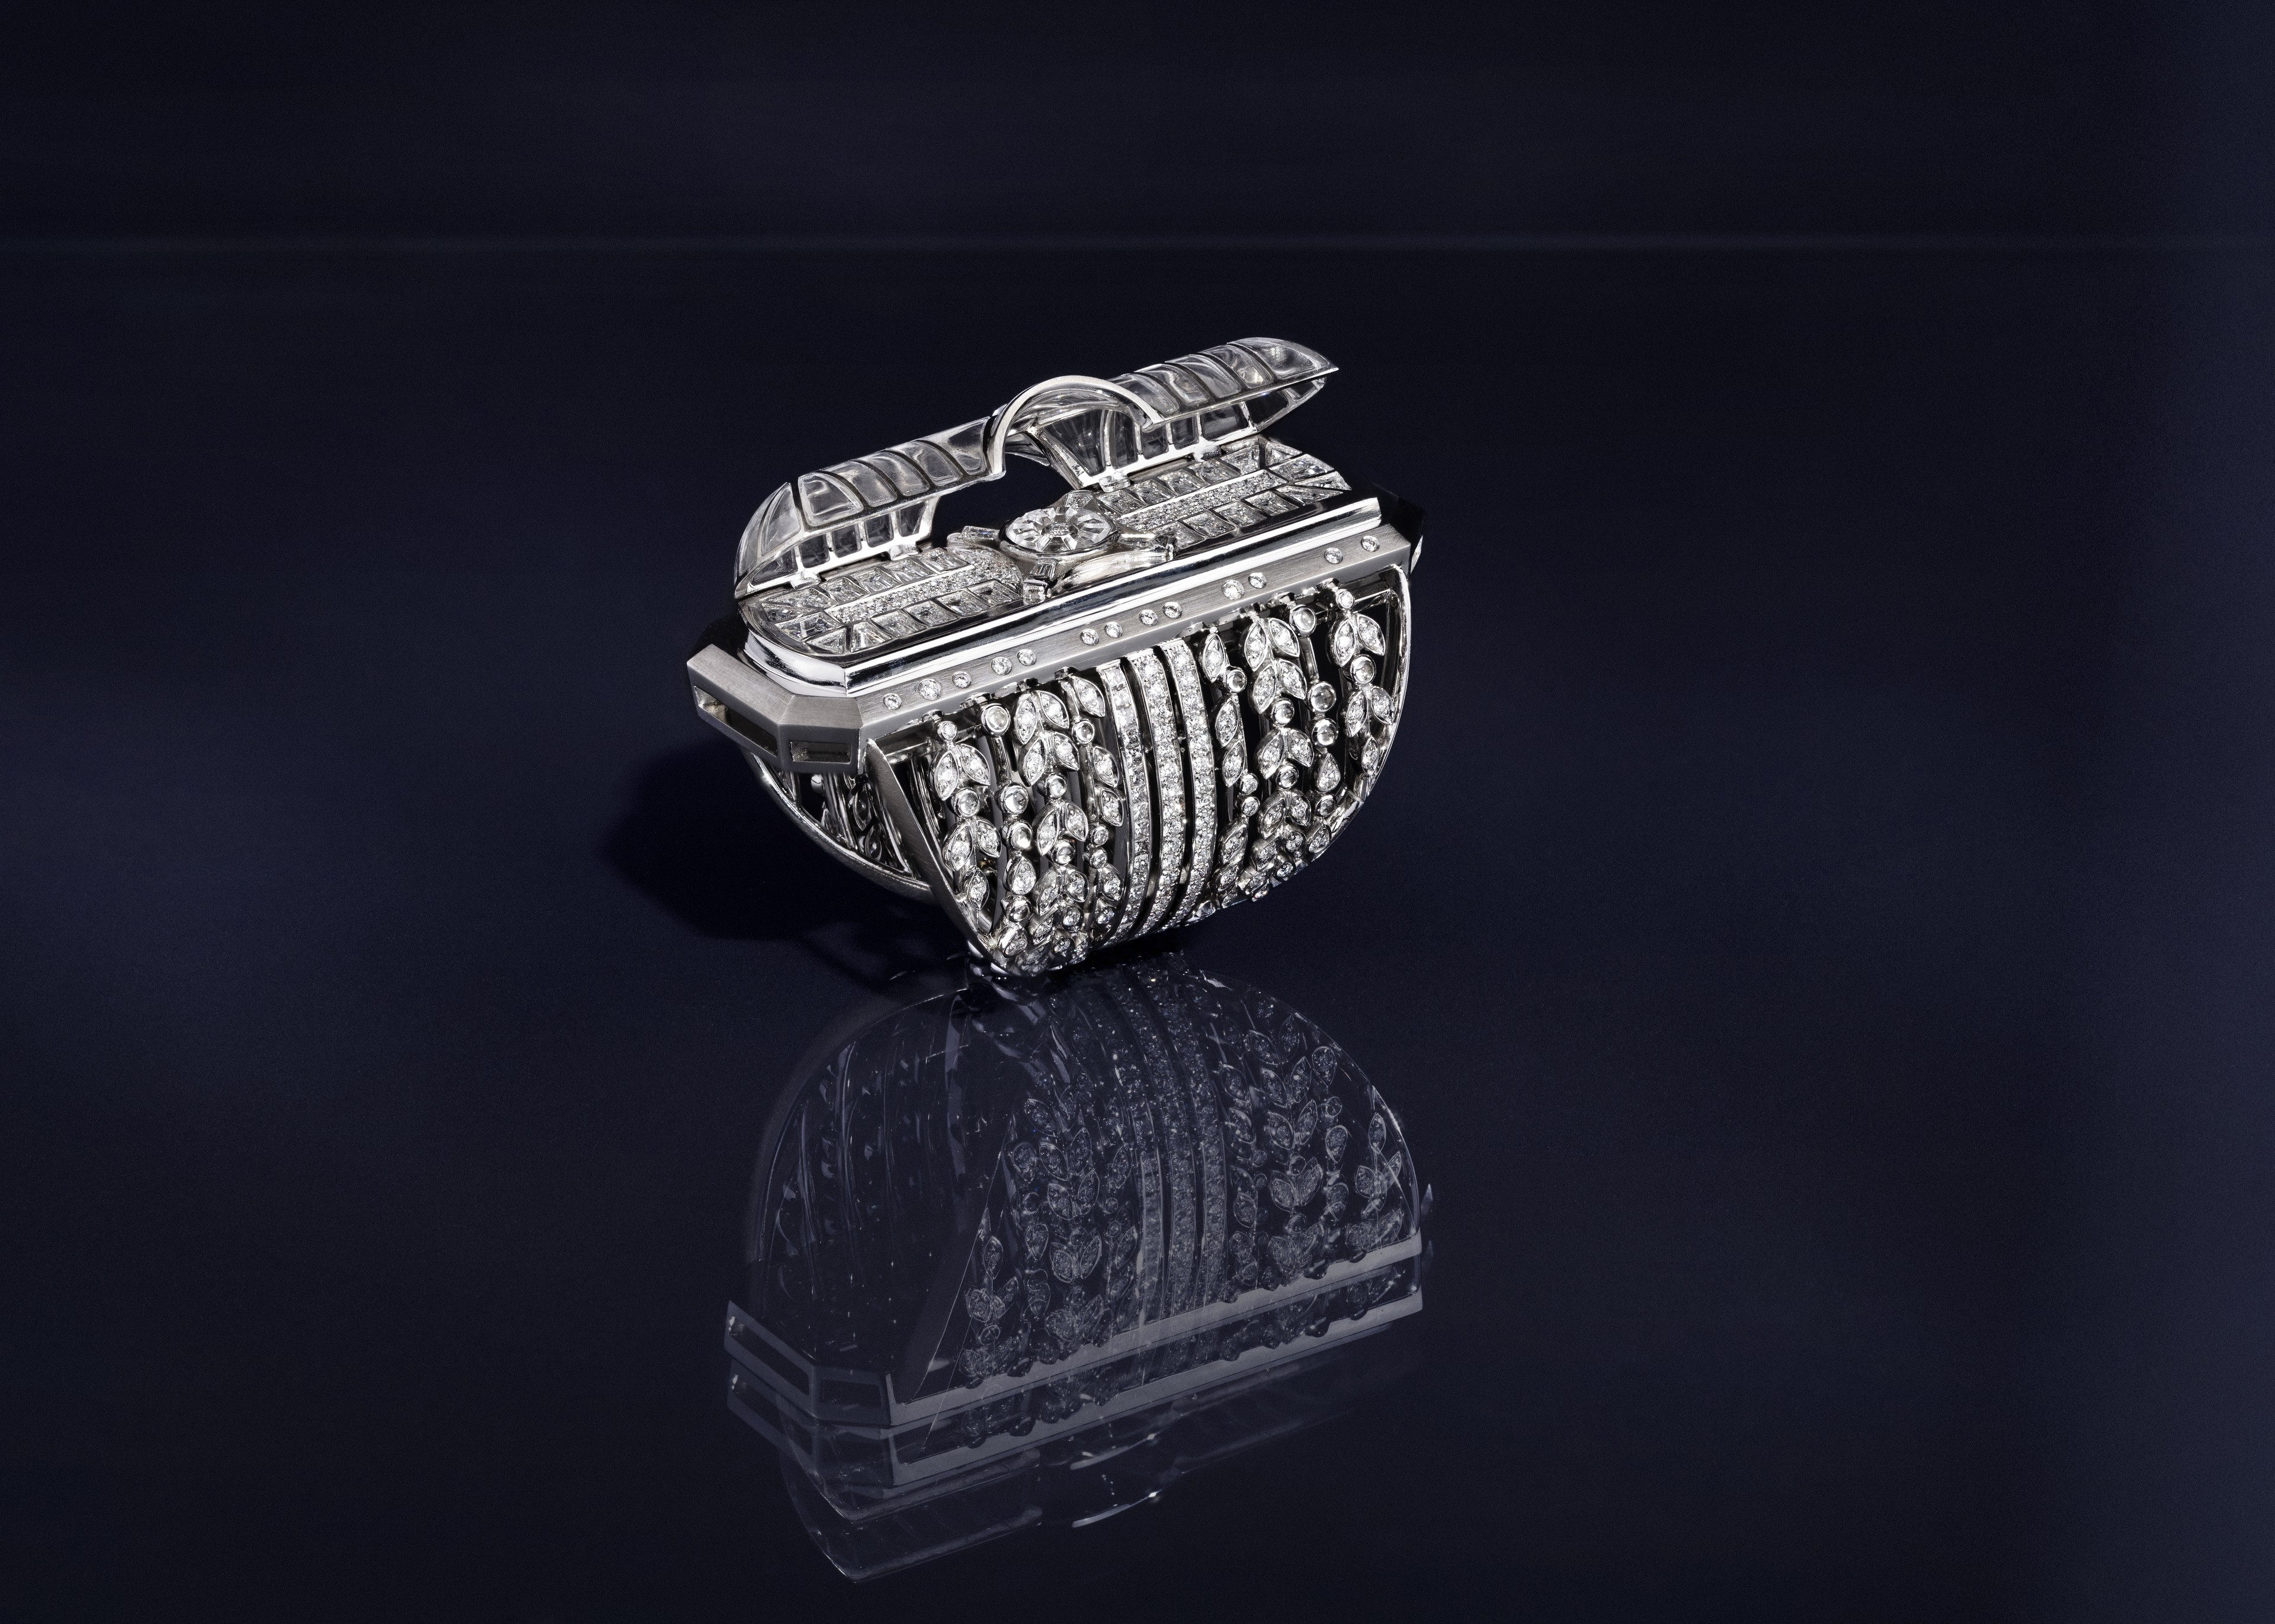 The Glass Roof Ring - White Gold, Rock Crystal, Diamonds & White sapphires - Irène - Paris - le Grand Palais - High Jewellery - Architecture - Scenography